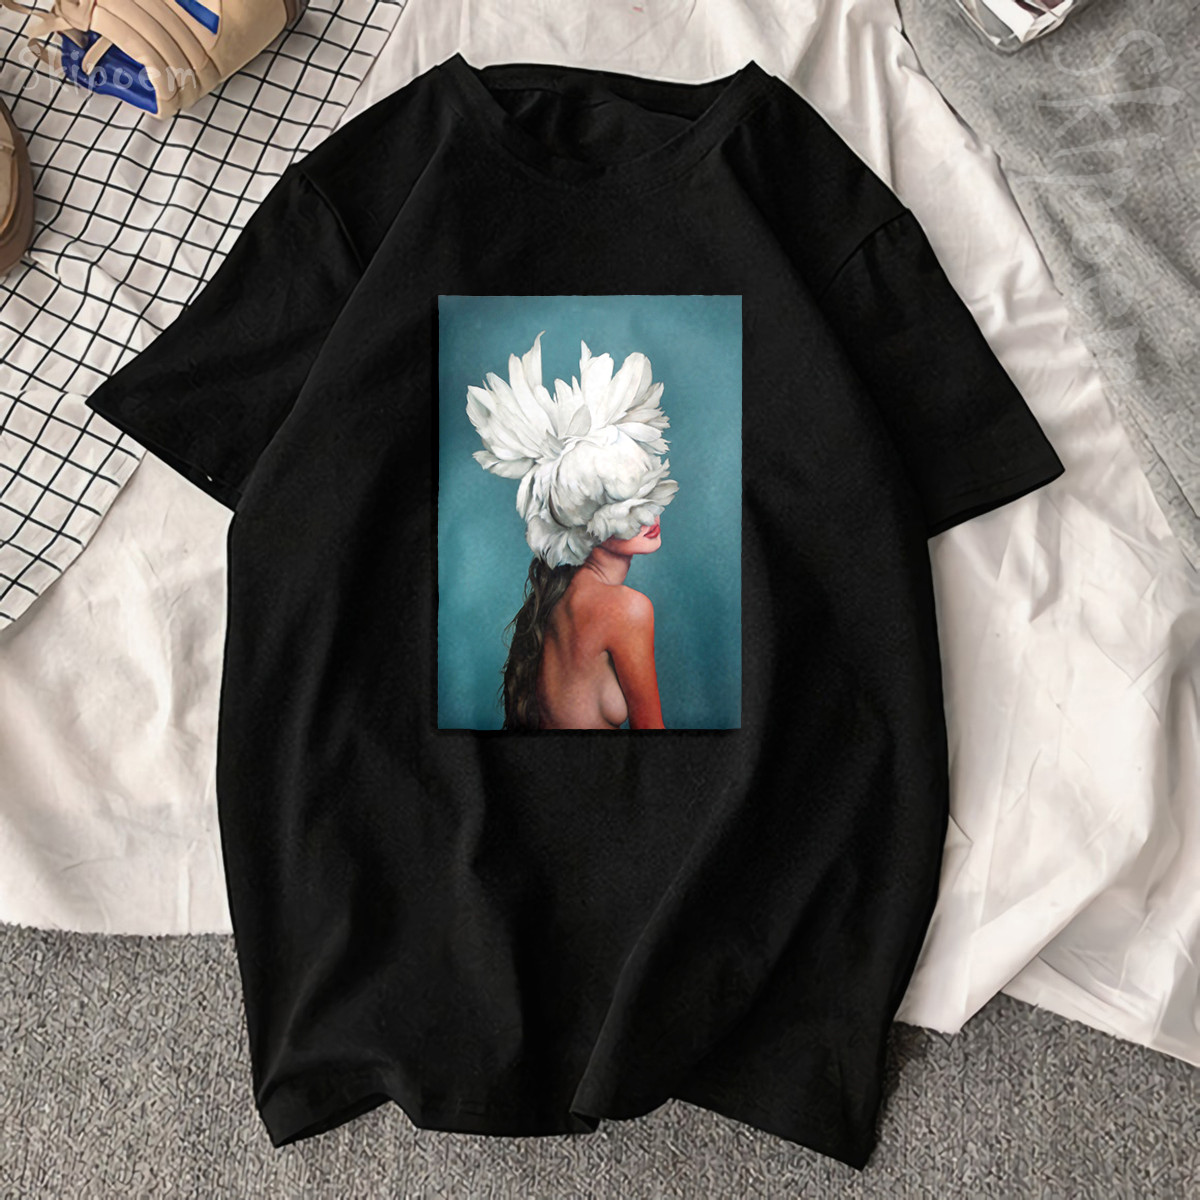 New Cotton Aesthetics T shirt Sexy Flowers Feather Printed Fashion Casual Couple T Shirt 4